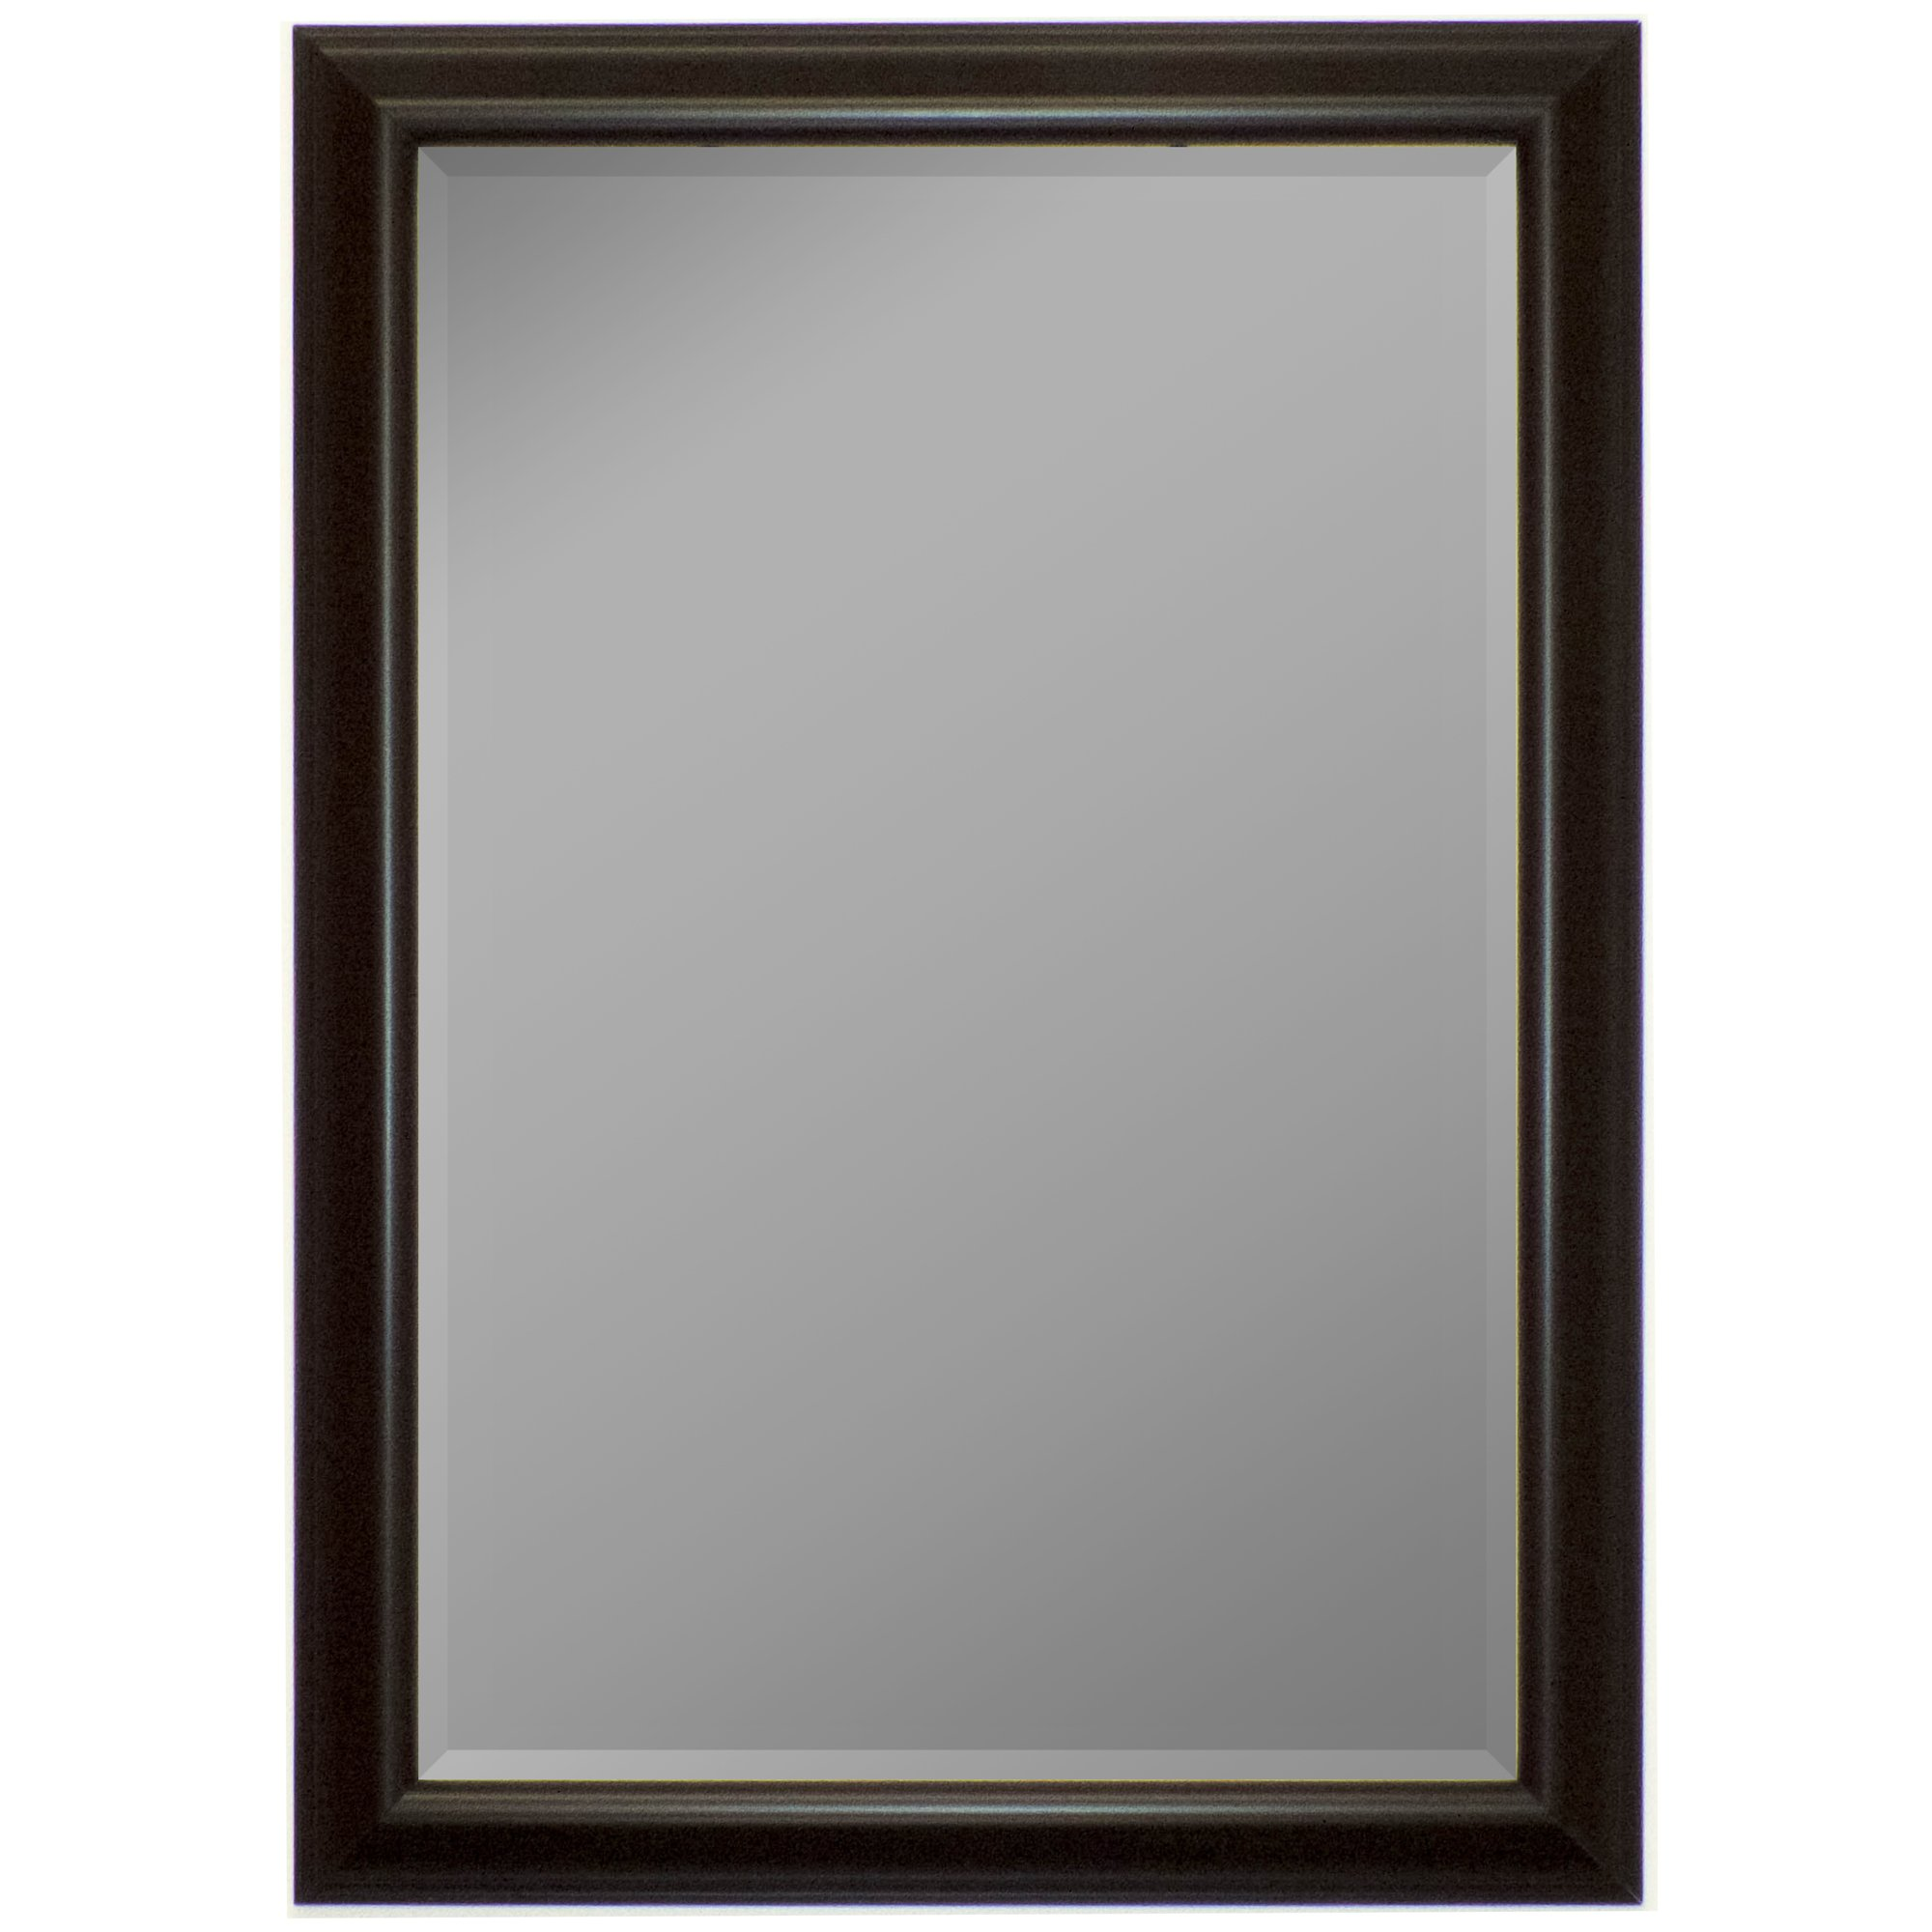 Hitchcock Butterfield Charcoal Gray Marbella Mirror by Hitchcock Butterfield